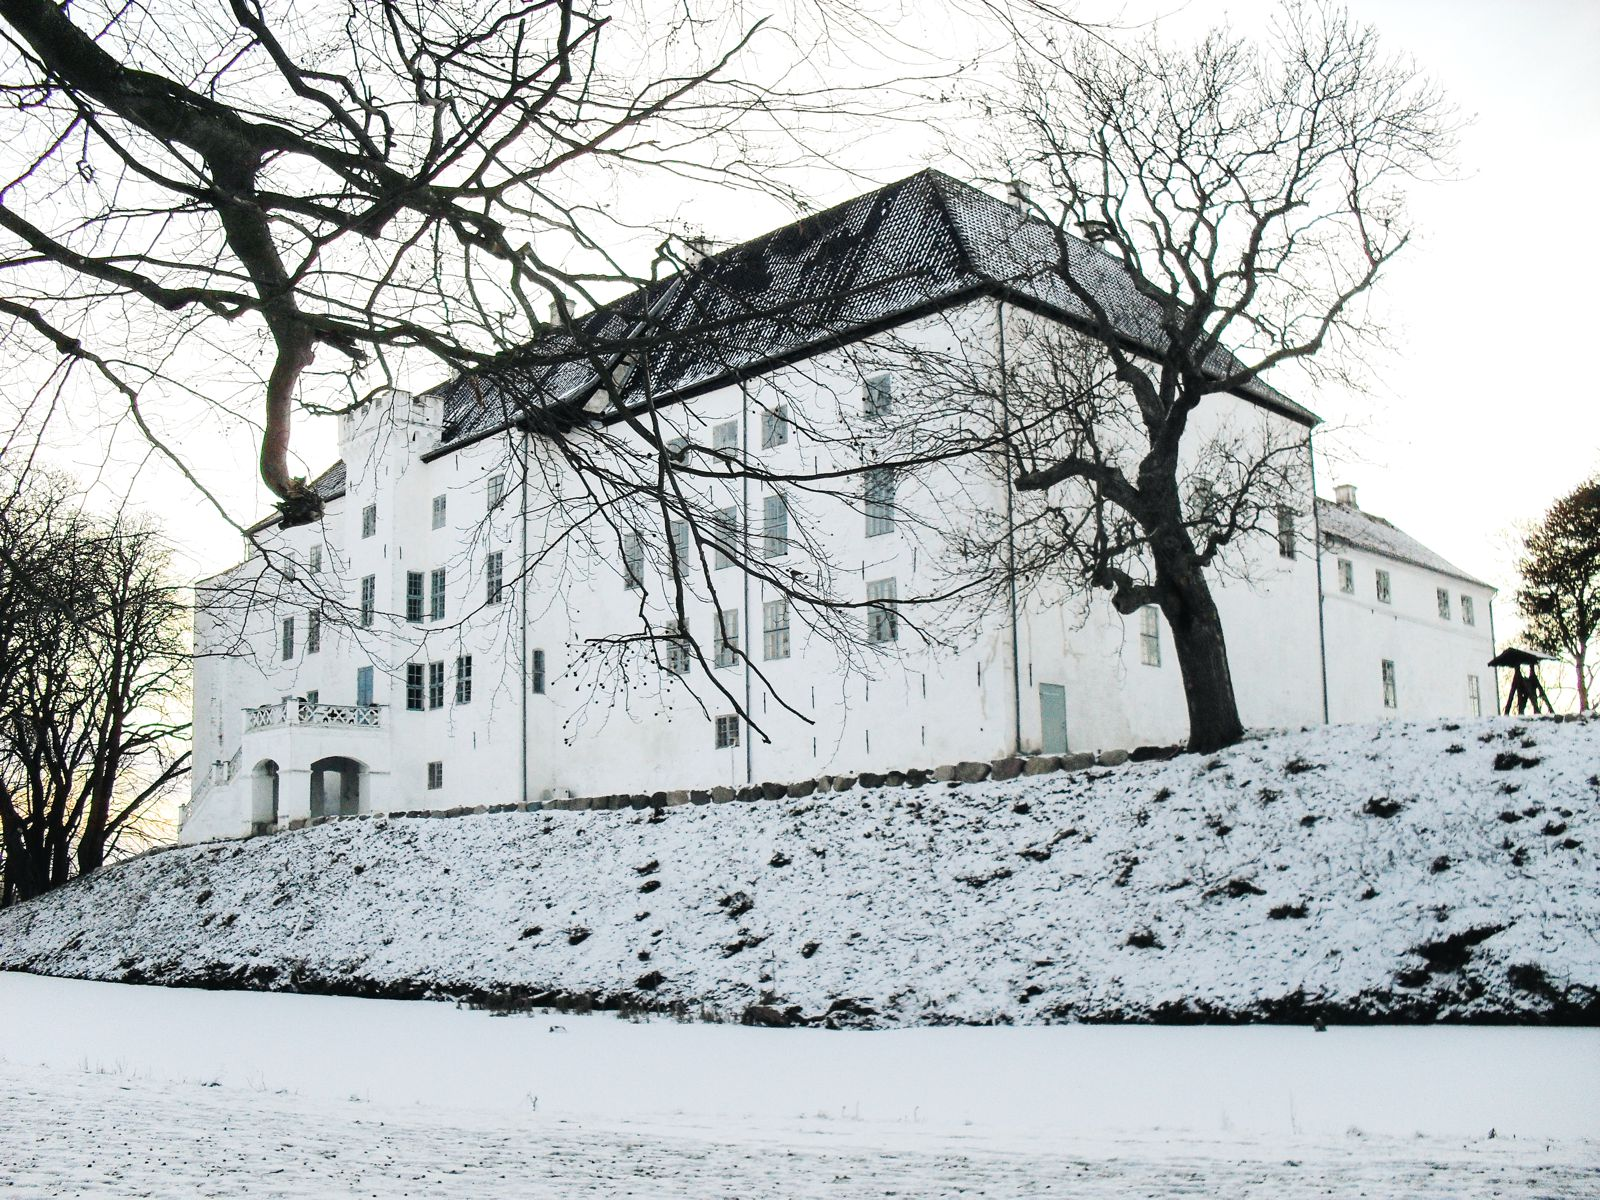 10 Fairytale Castles You Will Want To Visit In Denmark (5)